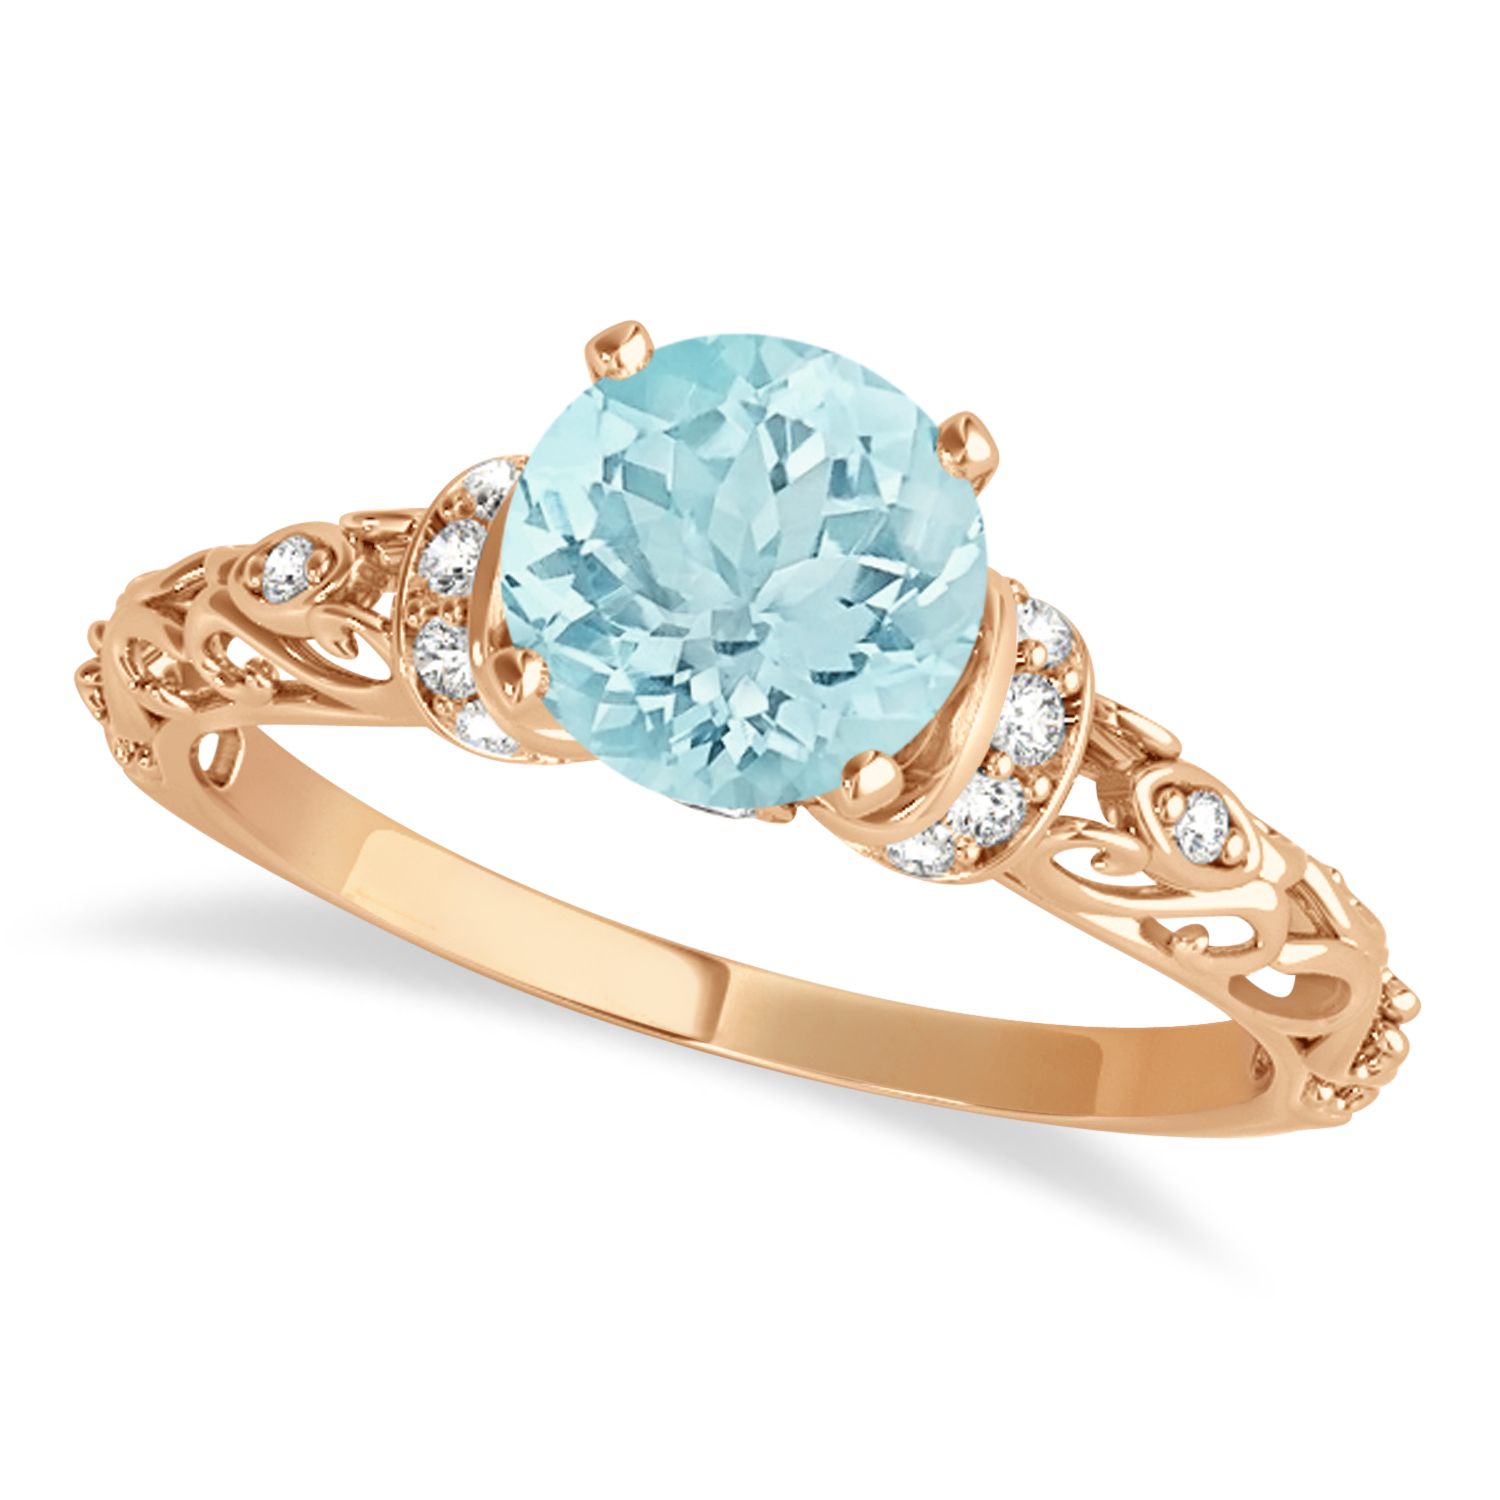 Aquamarine & Diamond Antique Style Engagement Ring 14k Rose Gold (1.12ct)